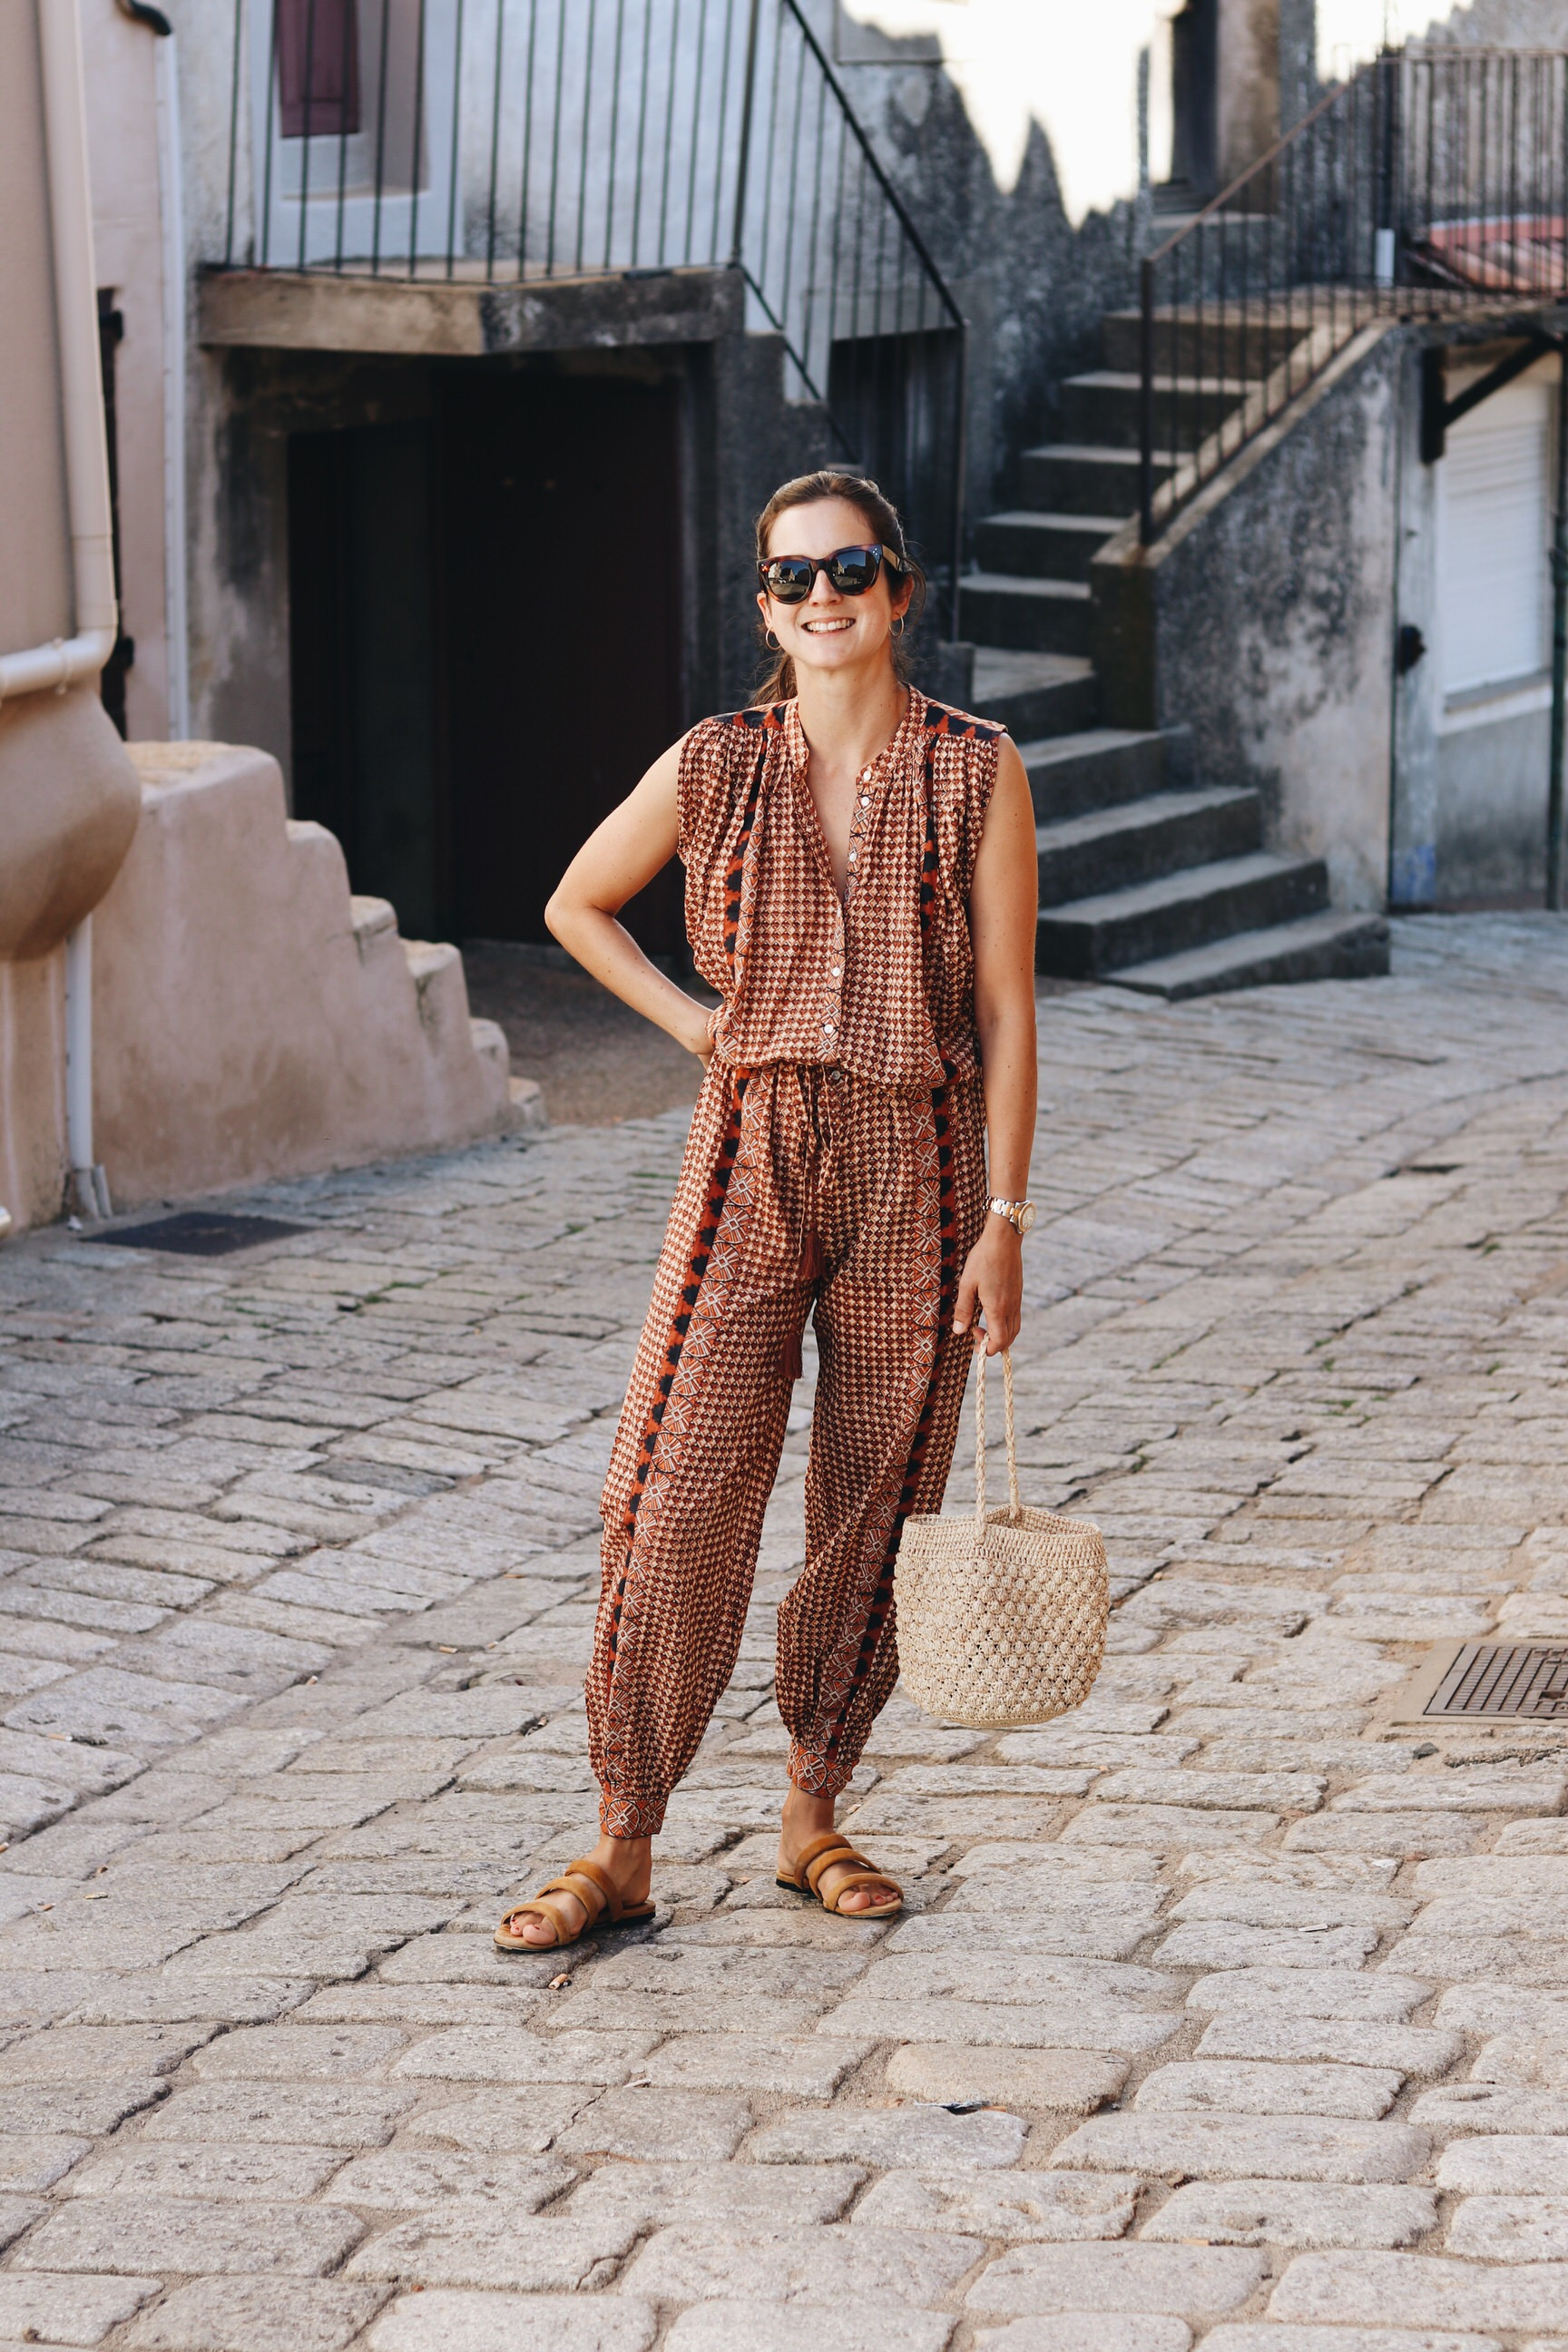 Fair Fashion Tunika French Chic Outfit Korbtasche Celine Sonnenbrille Bloggerin